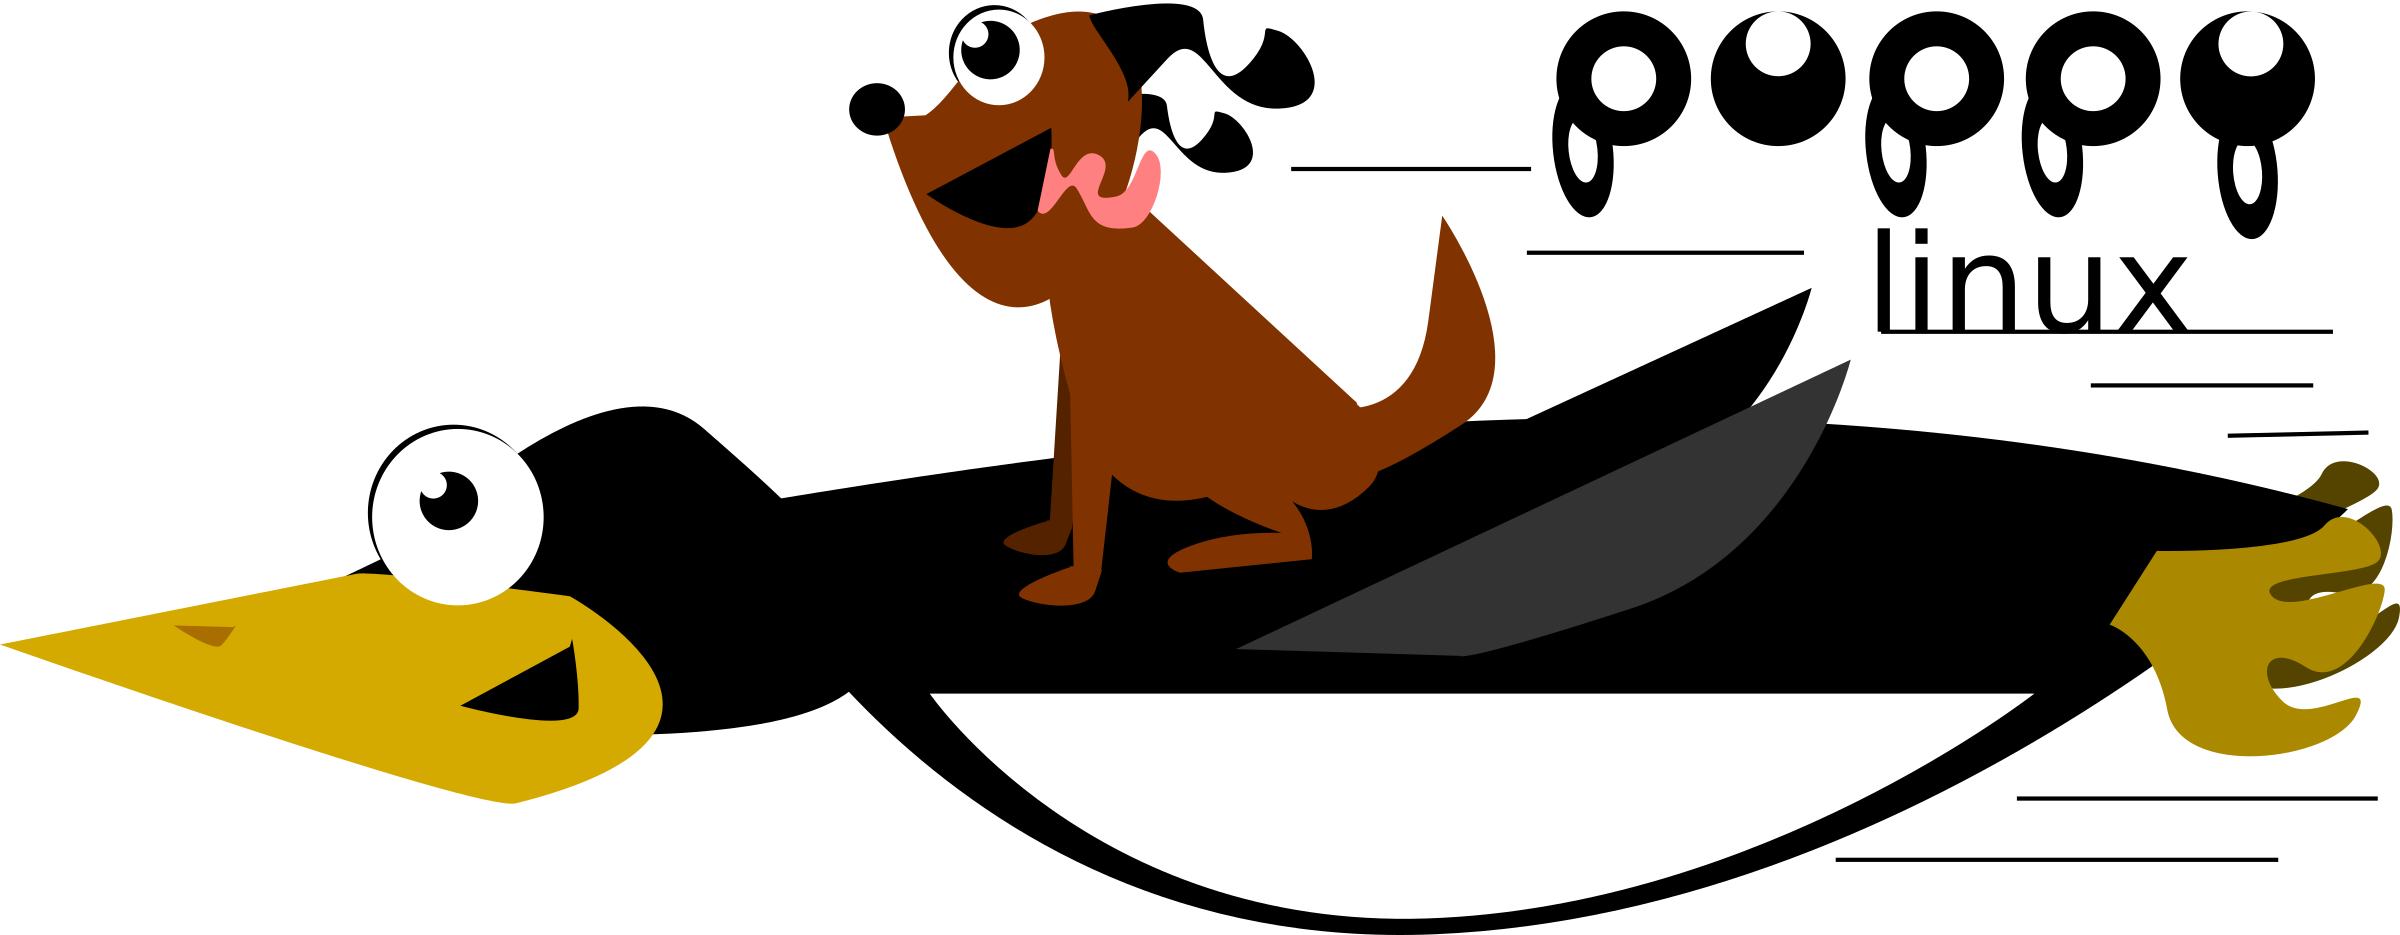 Puppy Linux Logo with Tux by feraliminal